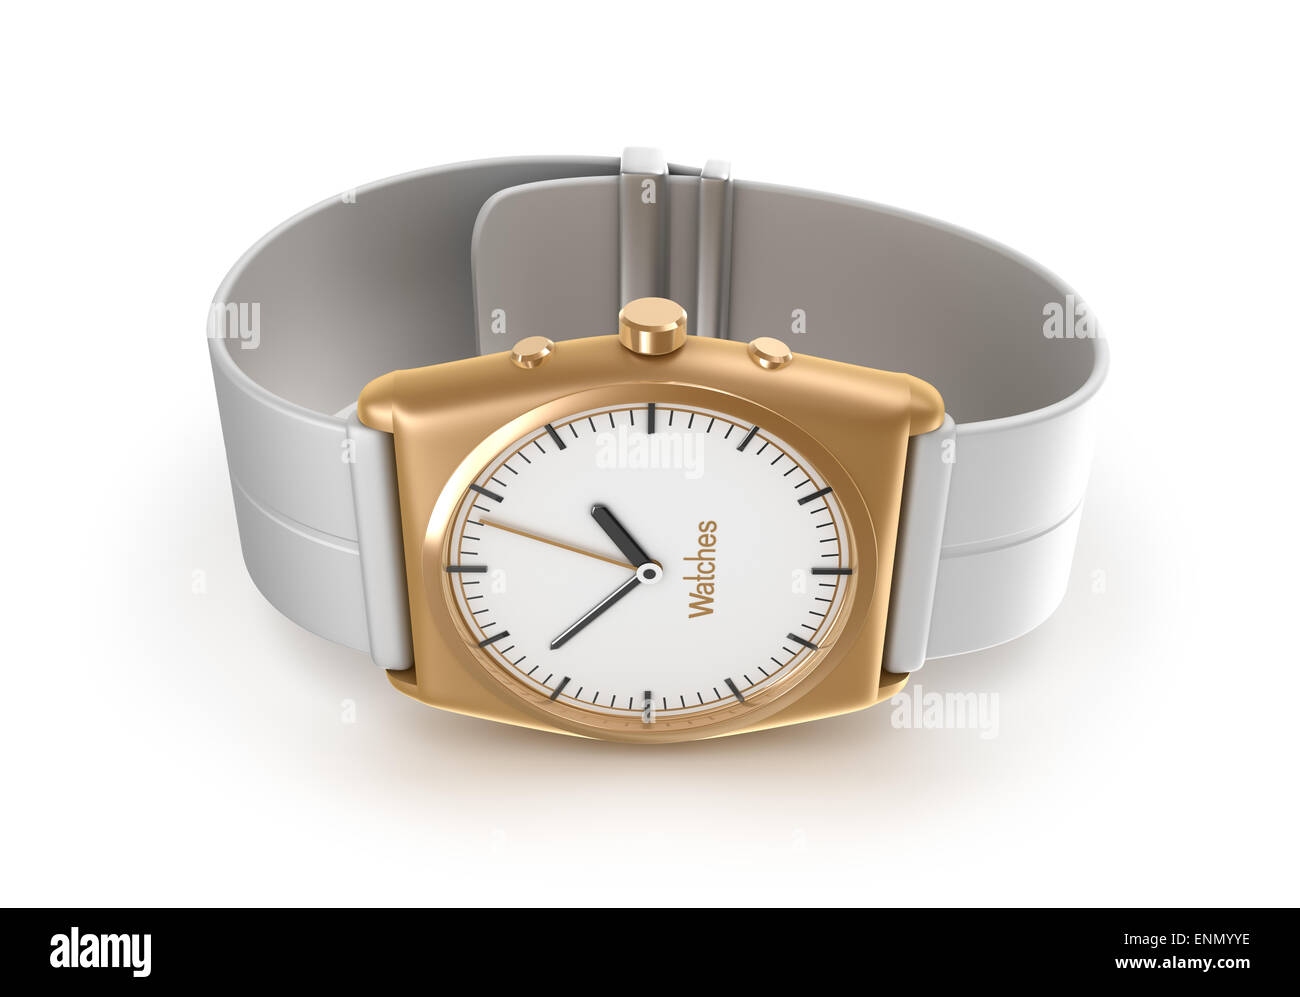 Golden wrist watch. My own design. - Stock Image